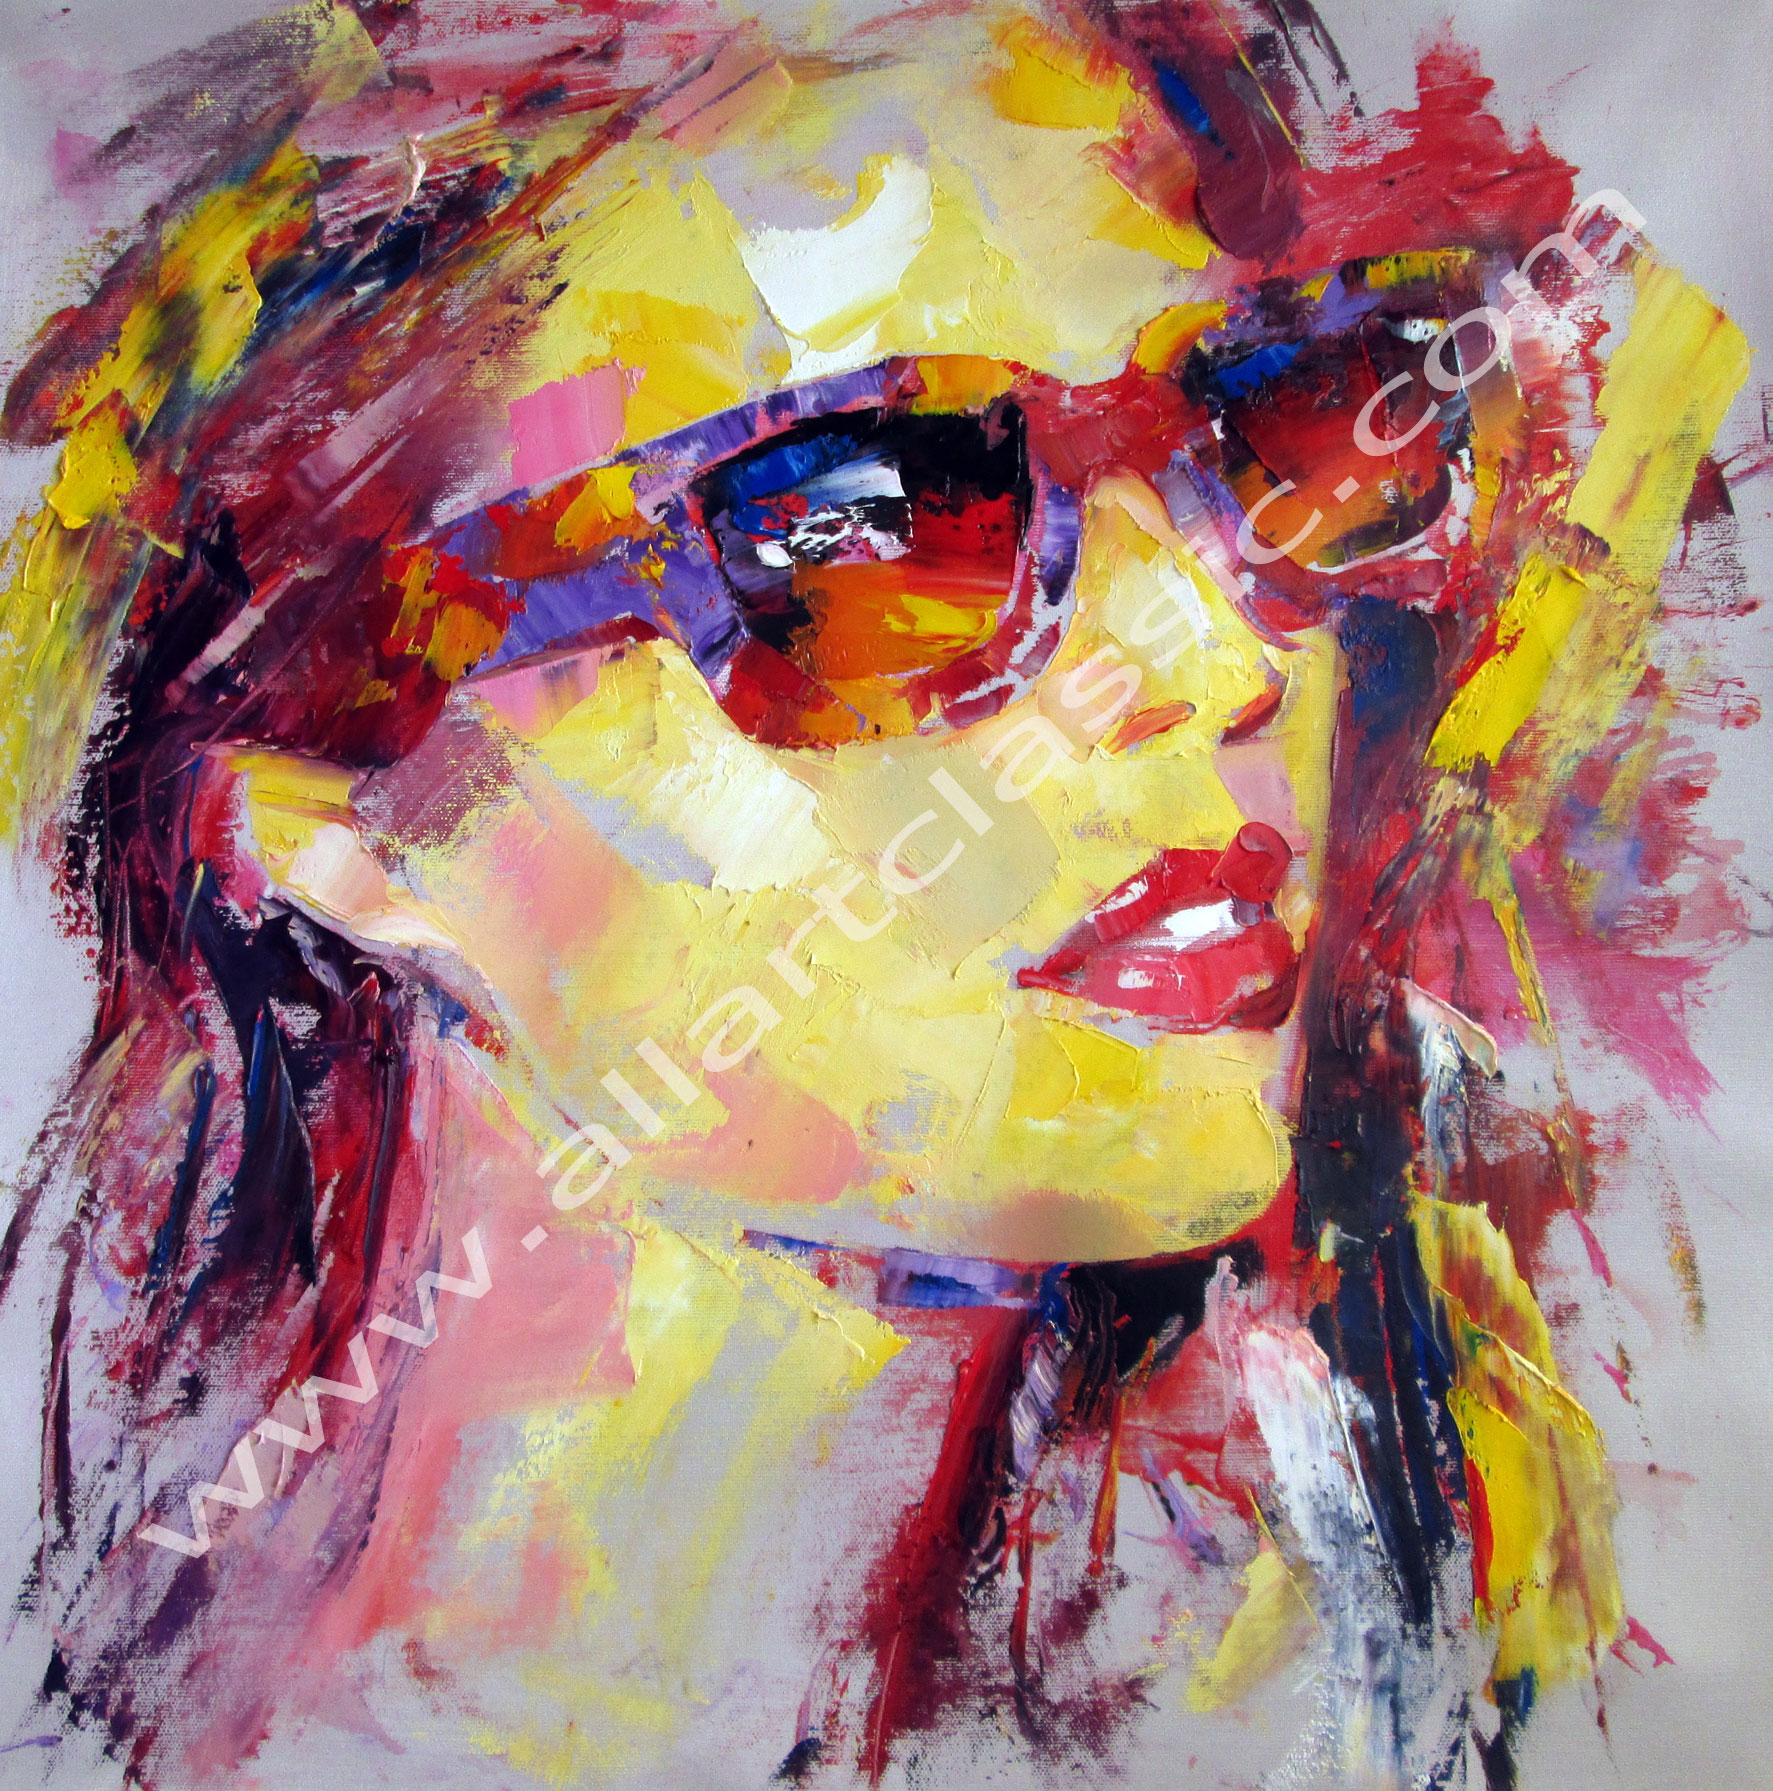 modern art paintings colorful palette knife and abstract art